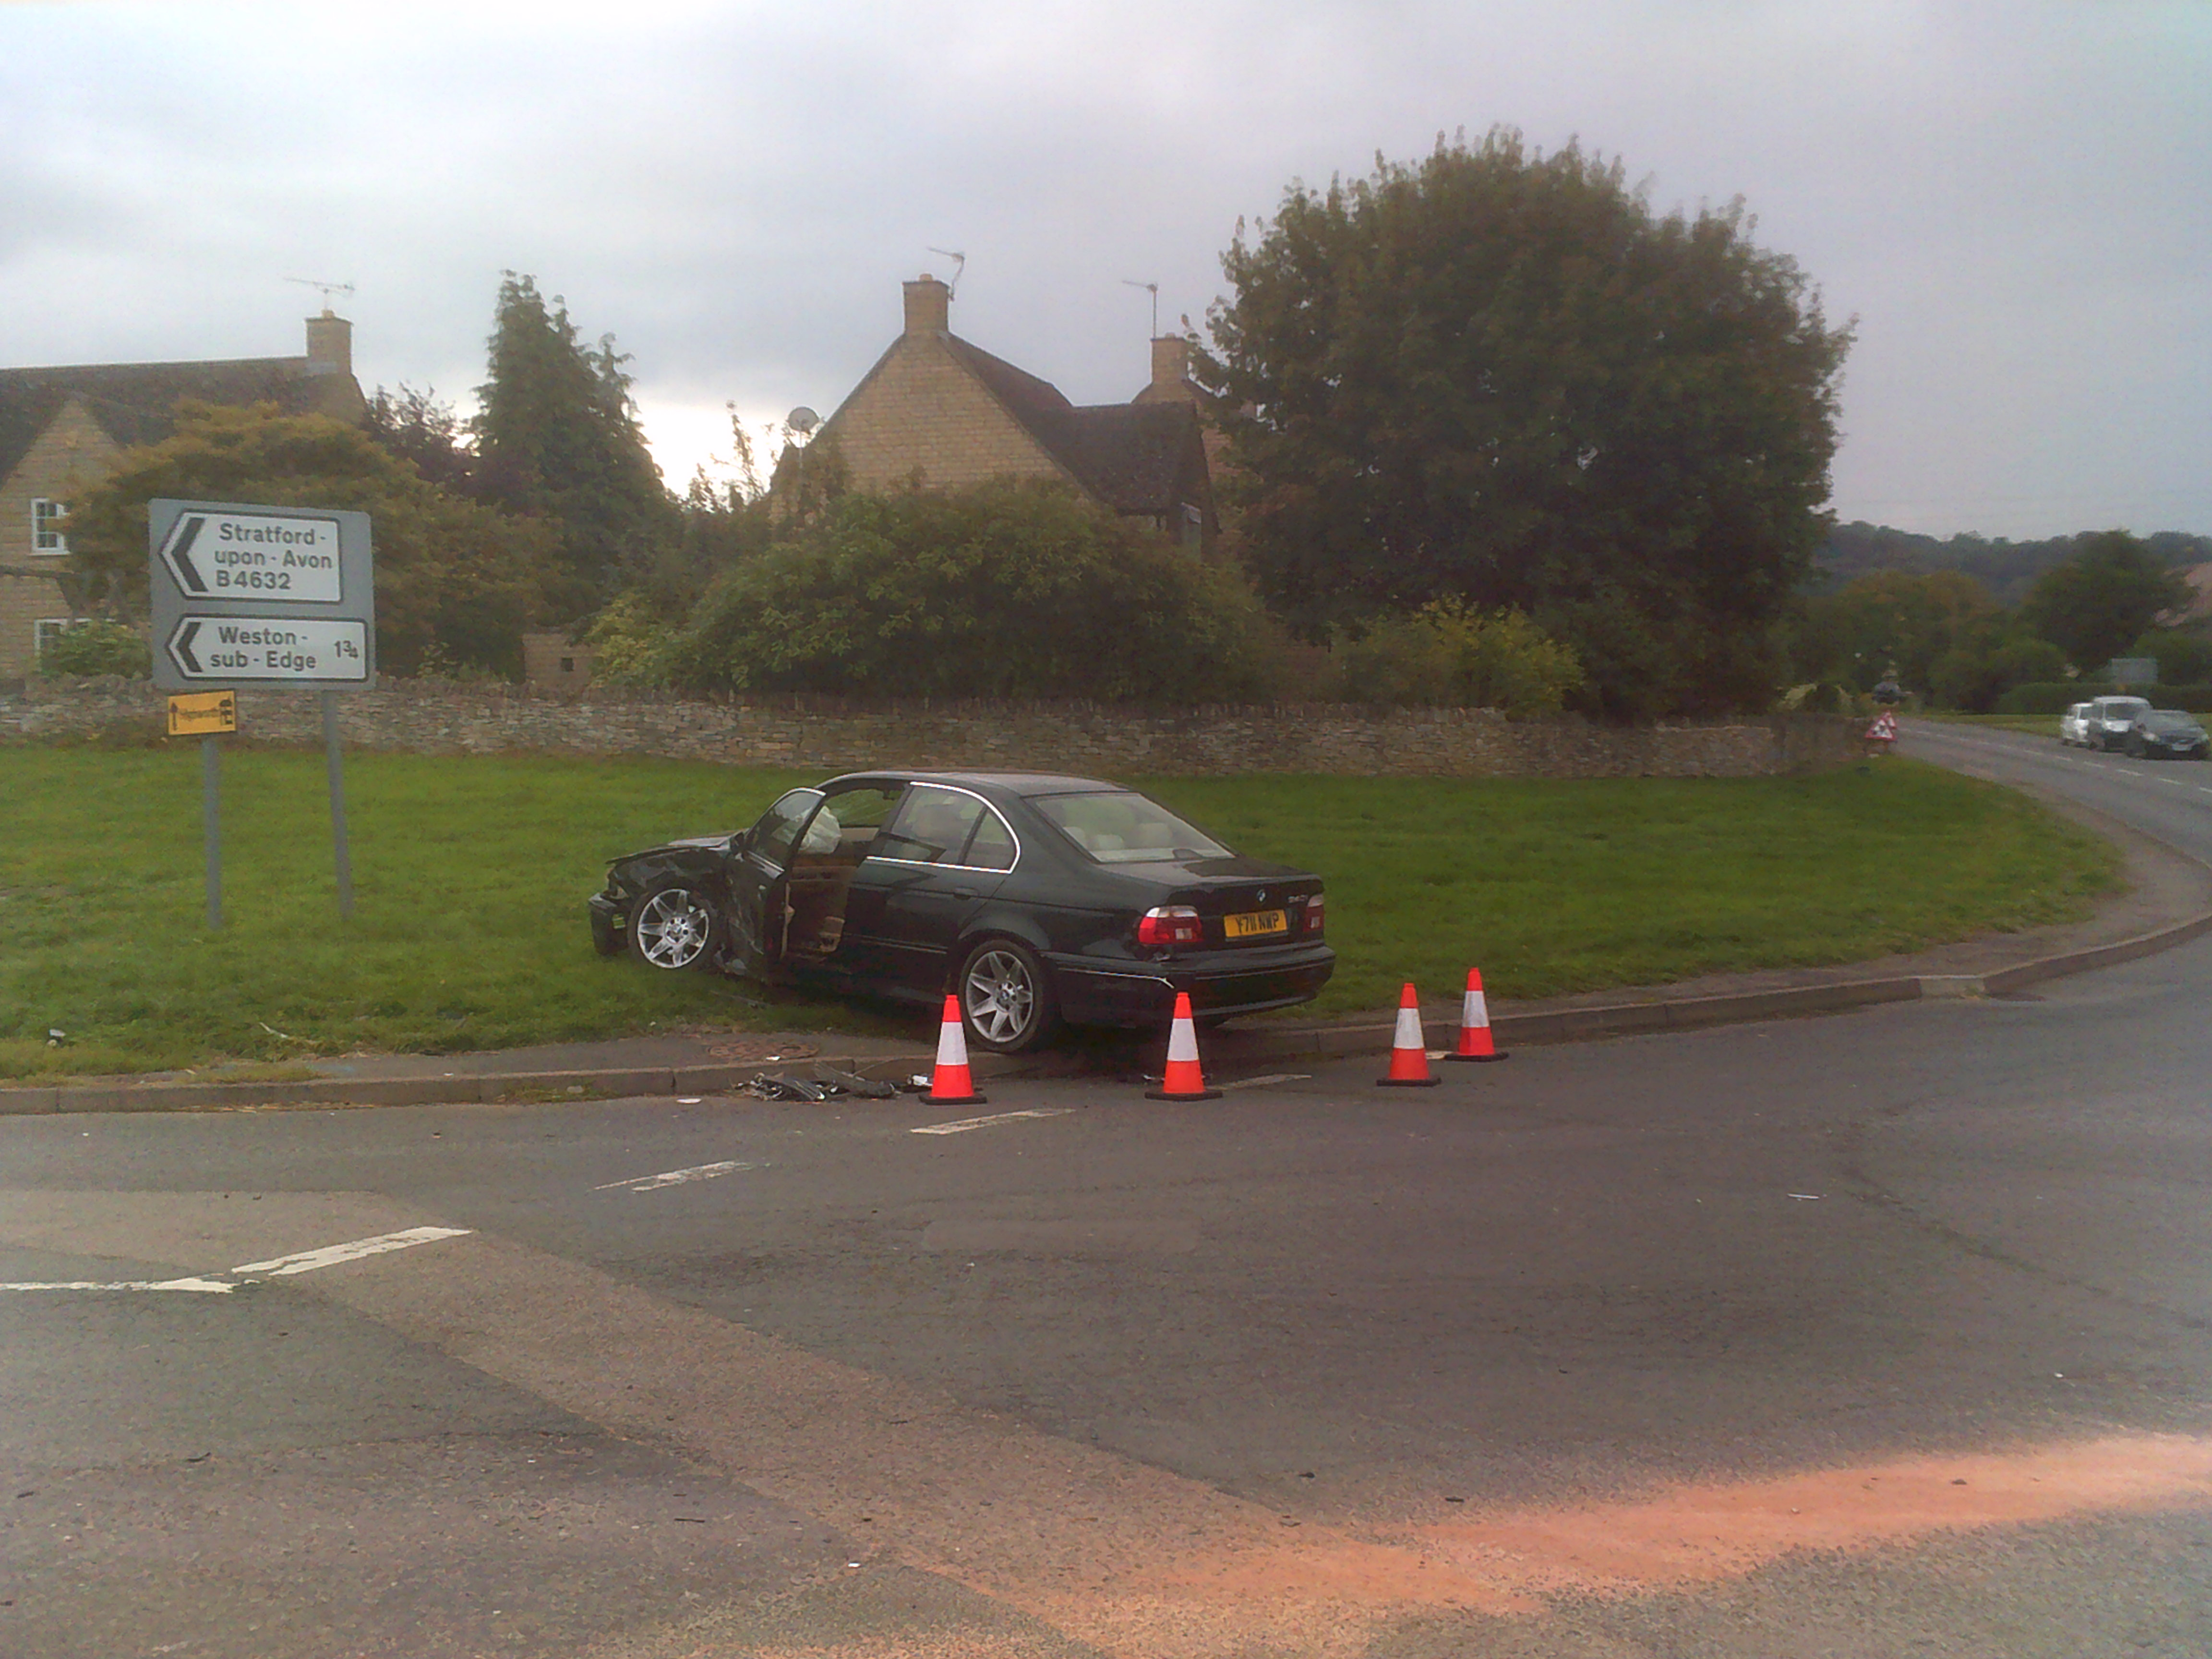 Wrecked car at Pike Roundabout in Willersey